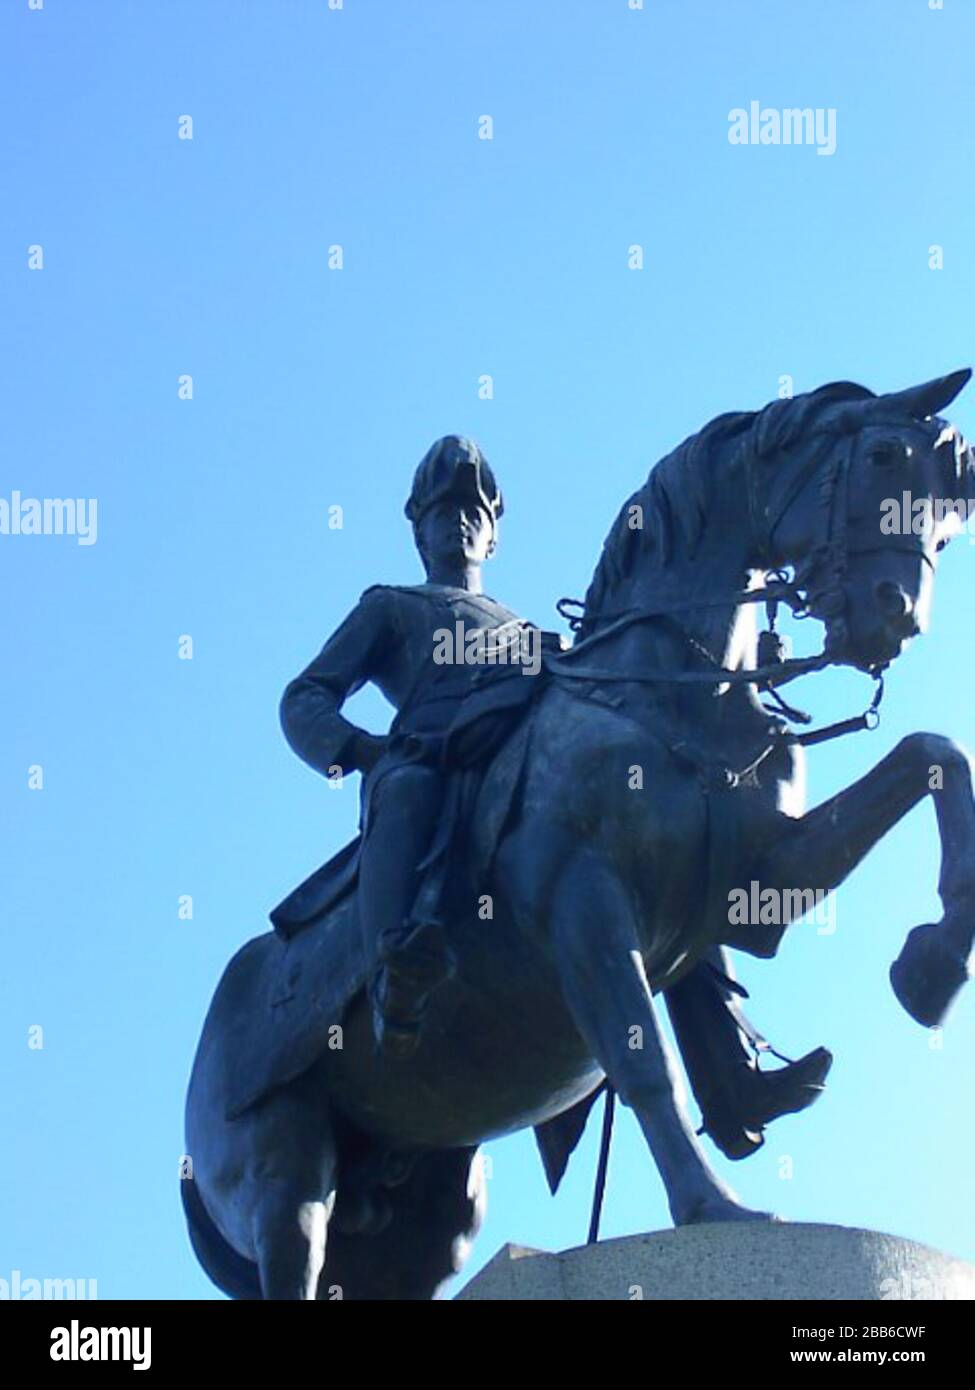 """""""English: Statue of John Hope, 1st Marquess of Linlithgow (Lord Linlithgow, Marquess Linlithgow) in Kings Domain, Melbourne.; Photo: October 19, 2004Statue:created 1908,[1] unveiled June 15, 1911.[2]; Own photo by User:Adam Carr; transferred from the English Wikipedia; User:Adam Carr; """" Stock Photo"""